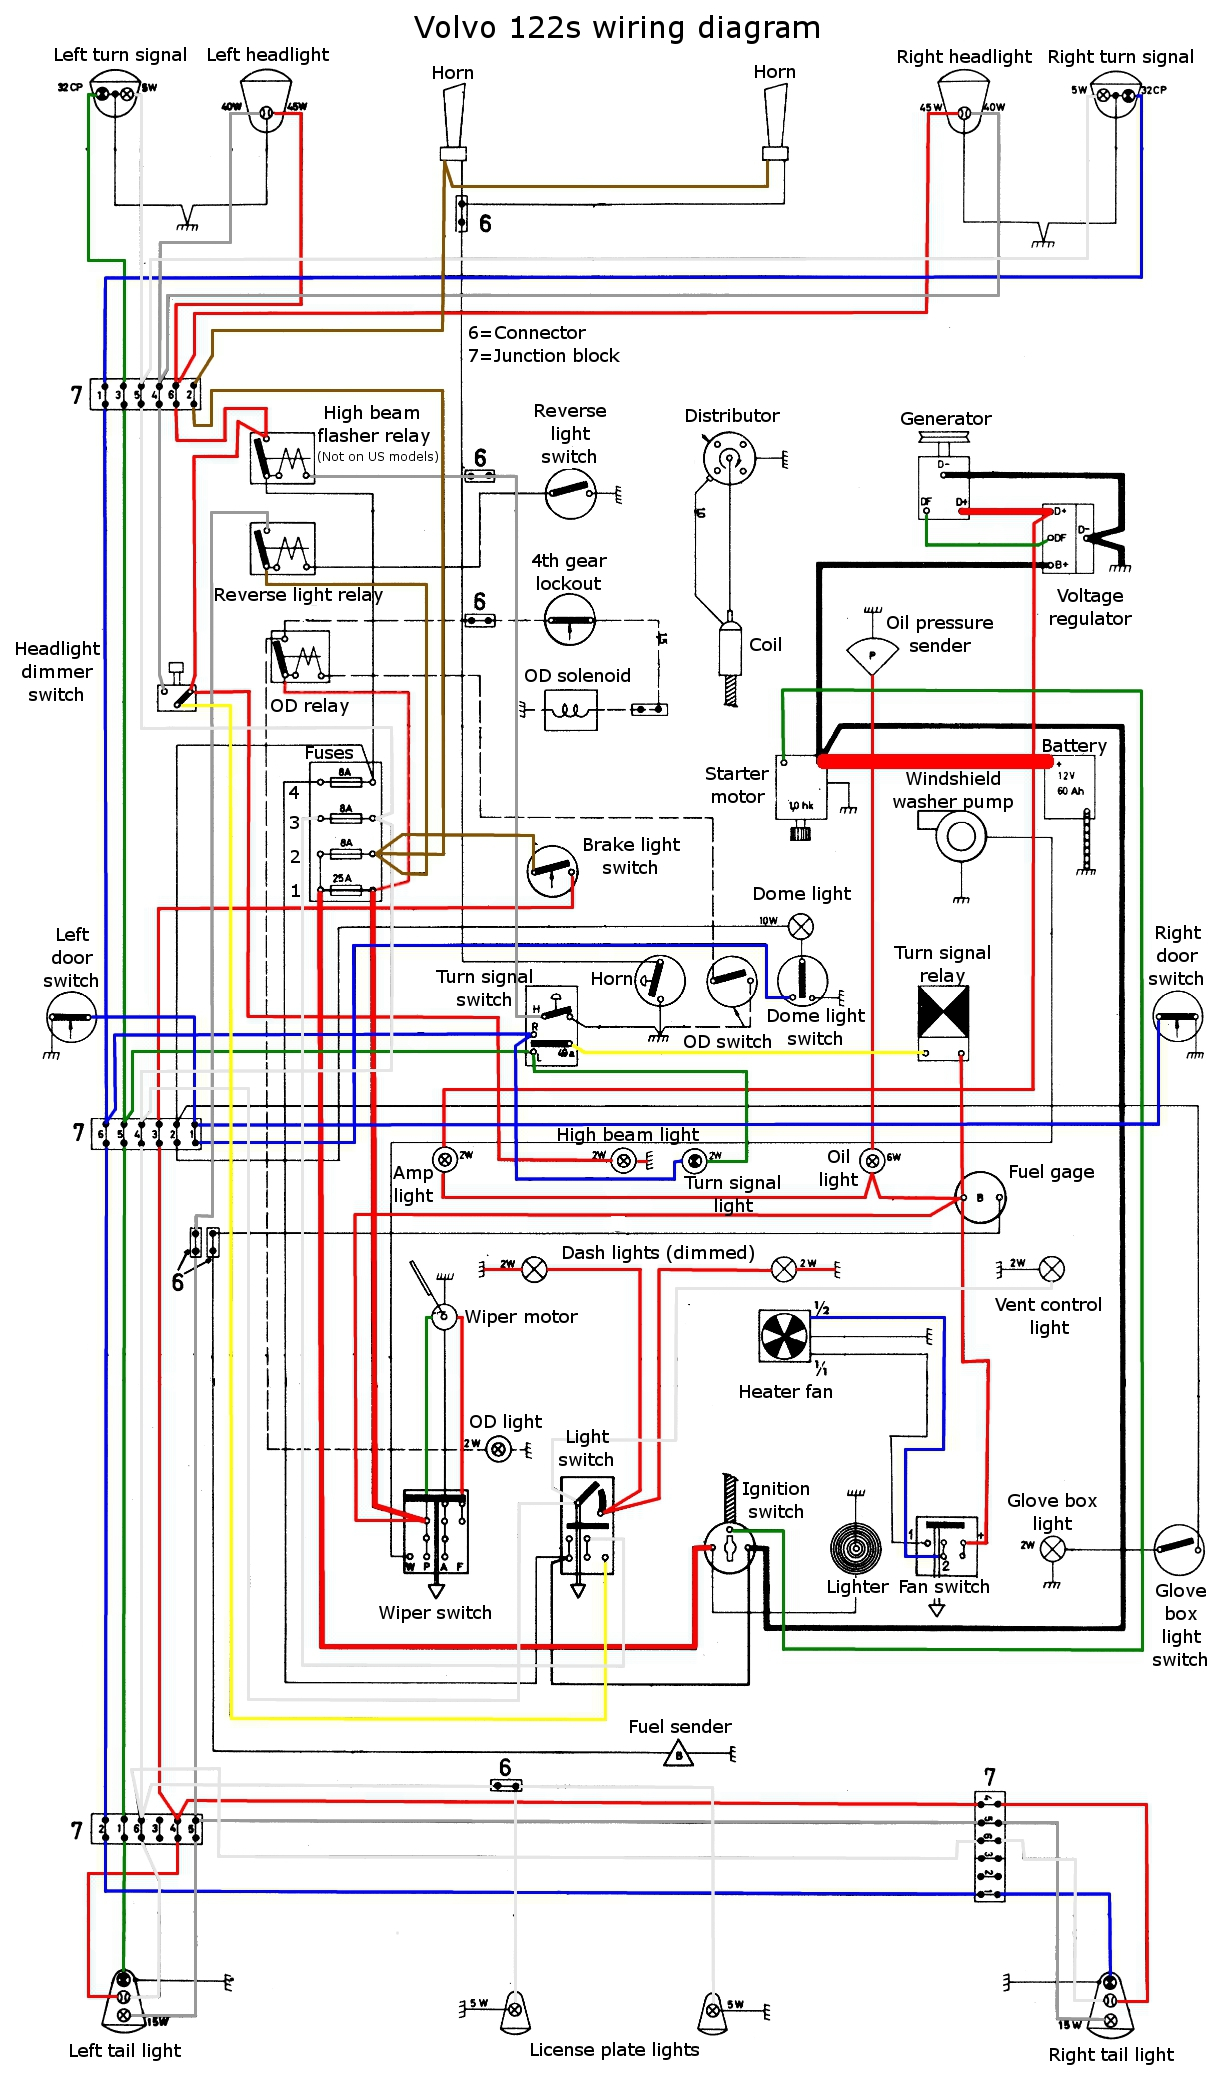 volvo 122 wiring diagram last edited by lloyddobler; 05-25-2018 at 04:50 am kenwood kdc 122 wiring diagram colors